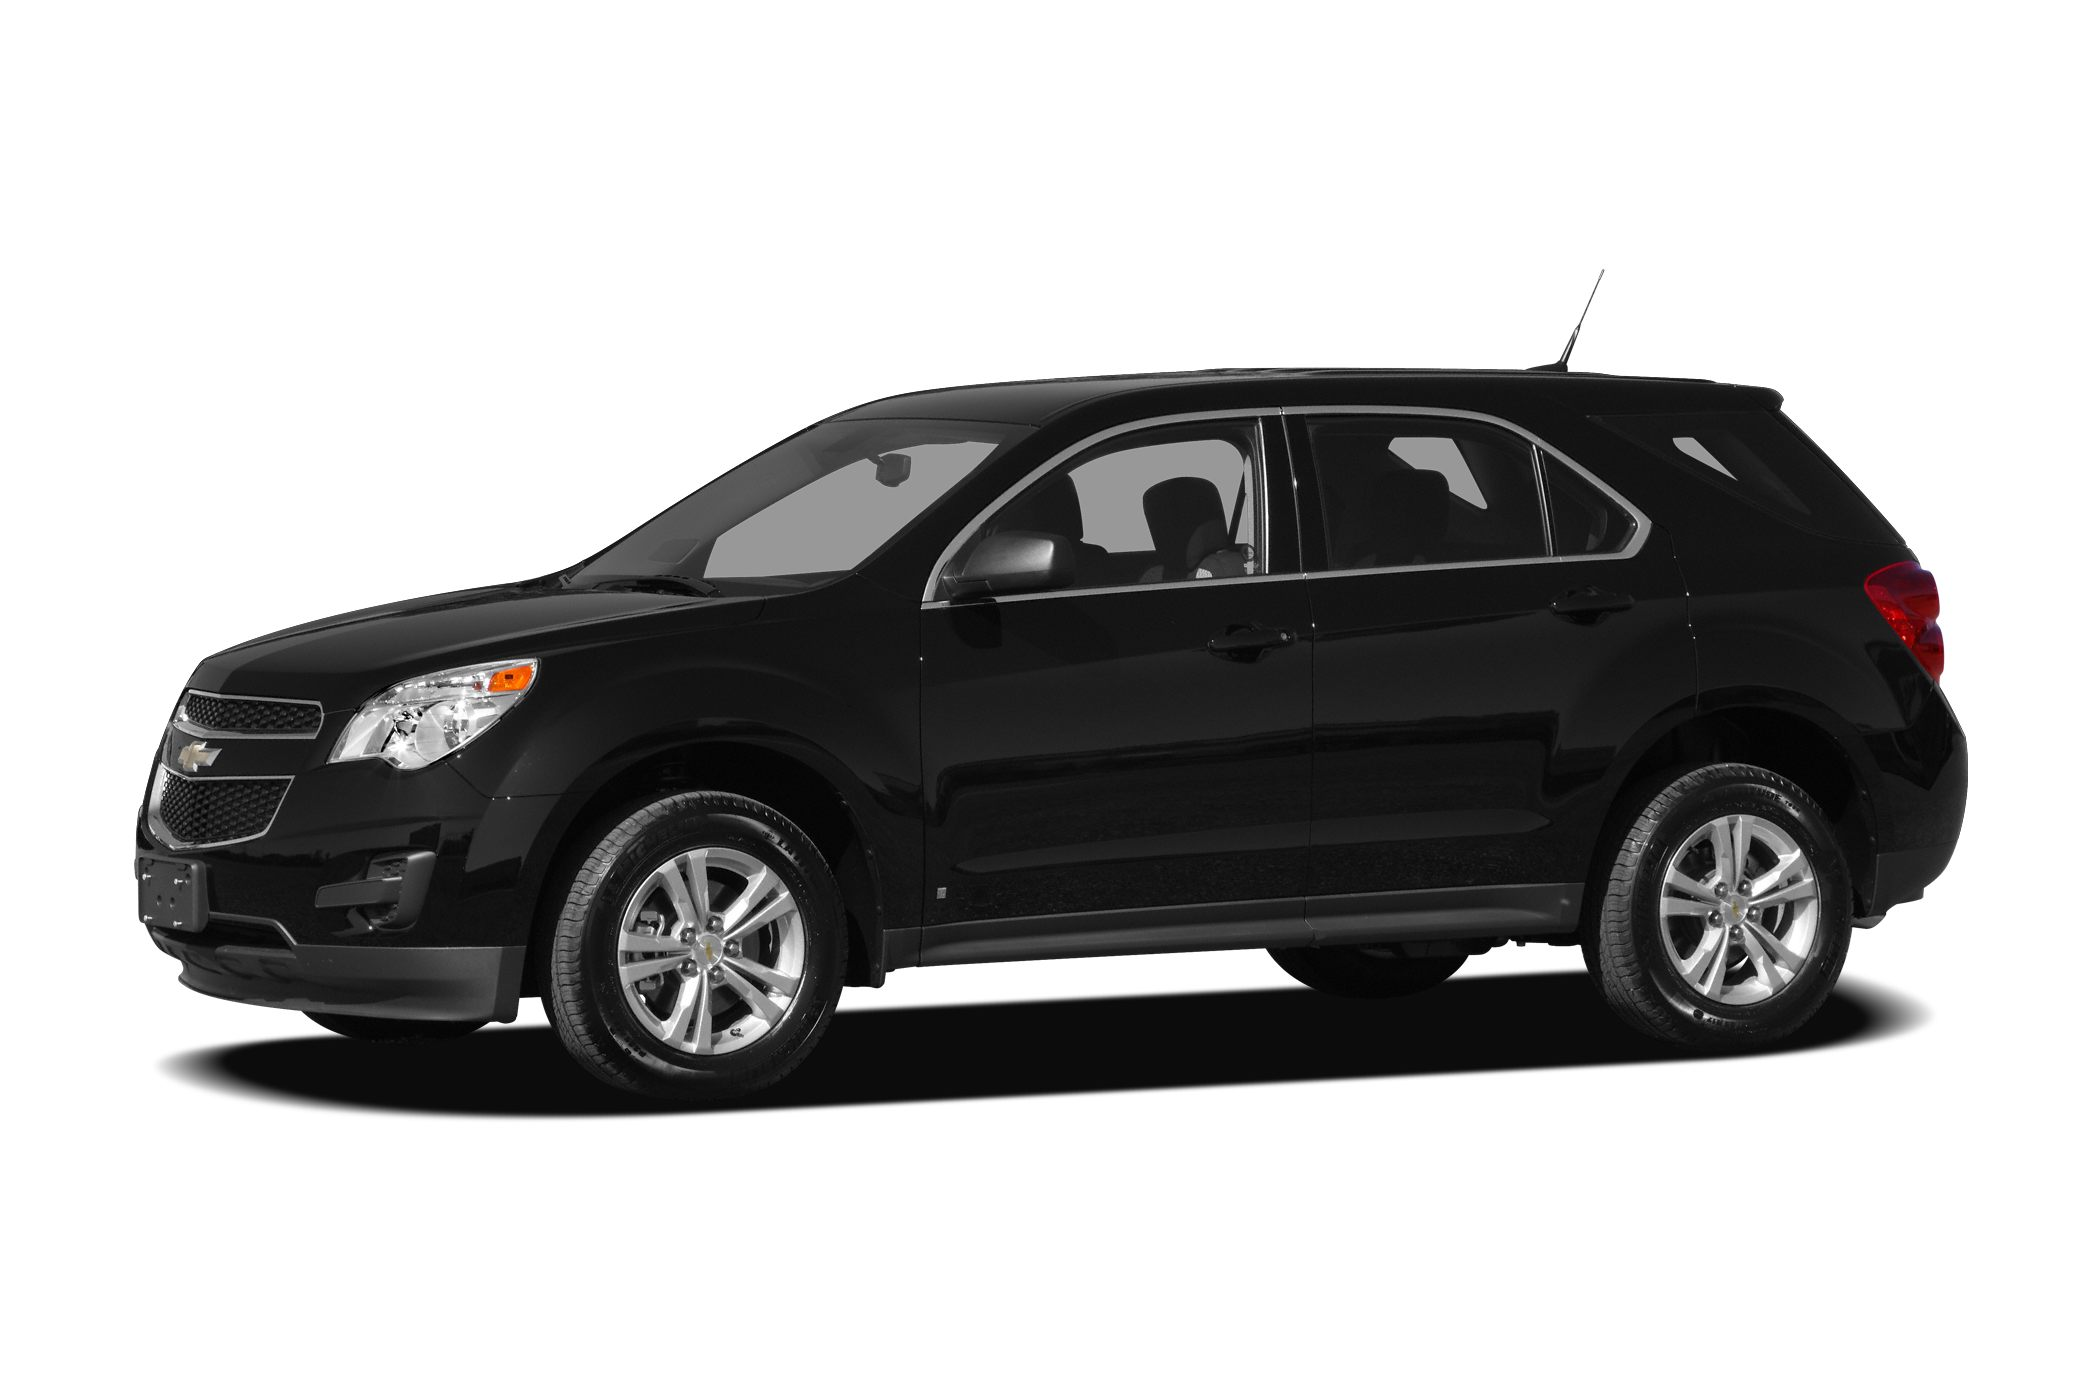 2011 Chevrolet Equinox 2LT Equipment Group 2LT 8-Way Power Driver Seat Adjuster Automatic Climat